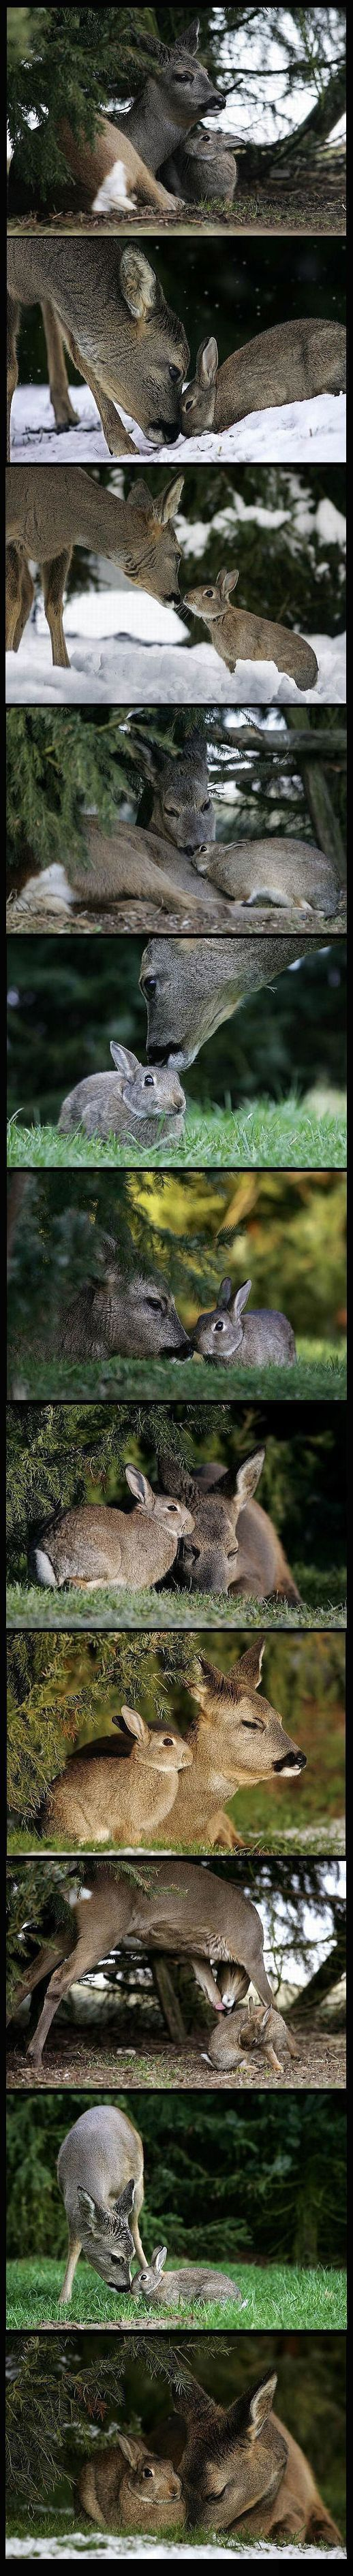 Wild bunny rabbit makes friends with a deer in the woodland forest - animal photography / Bambi and Thumper